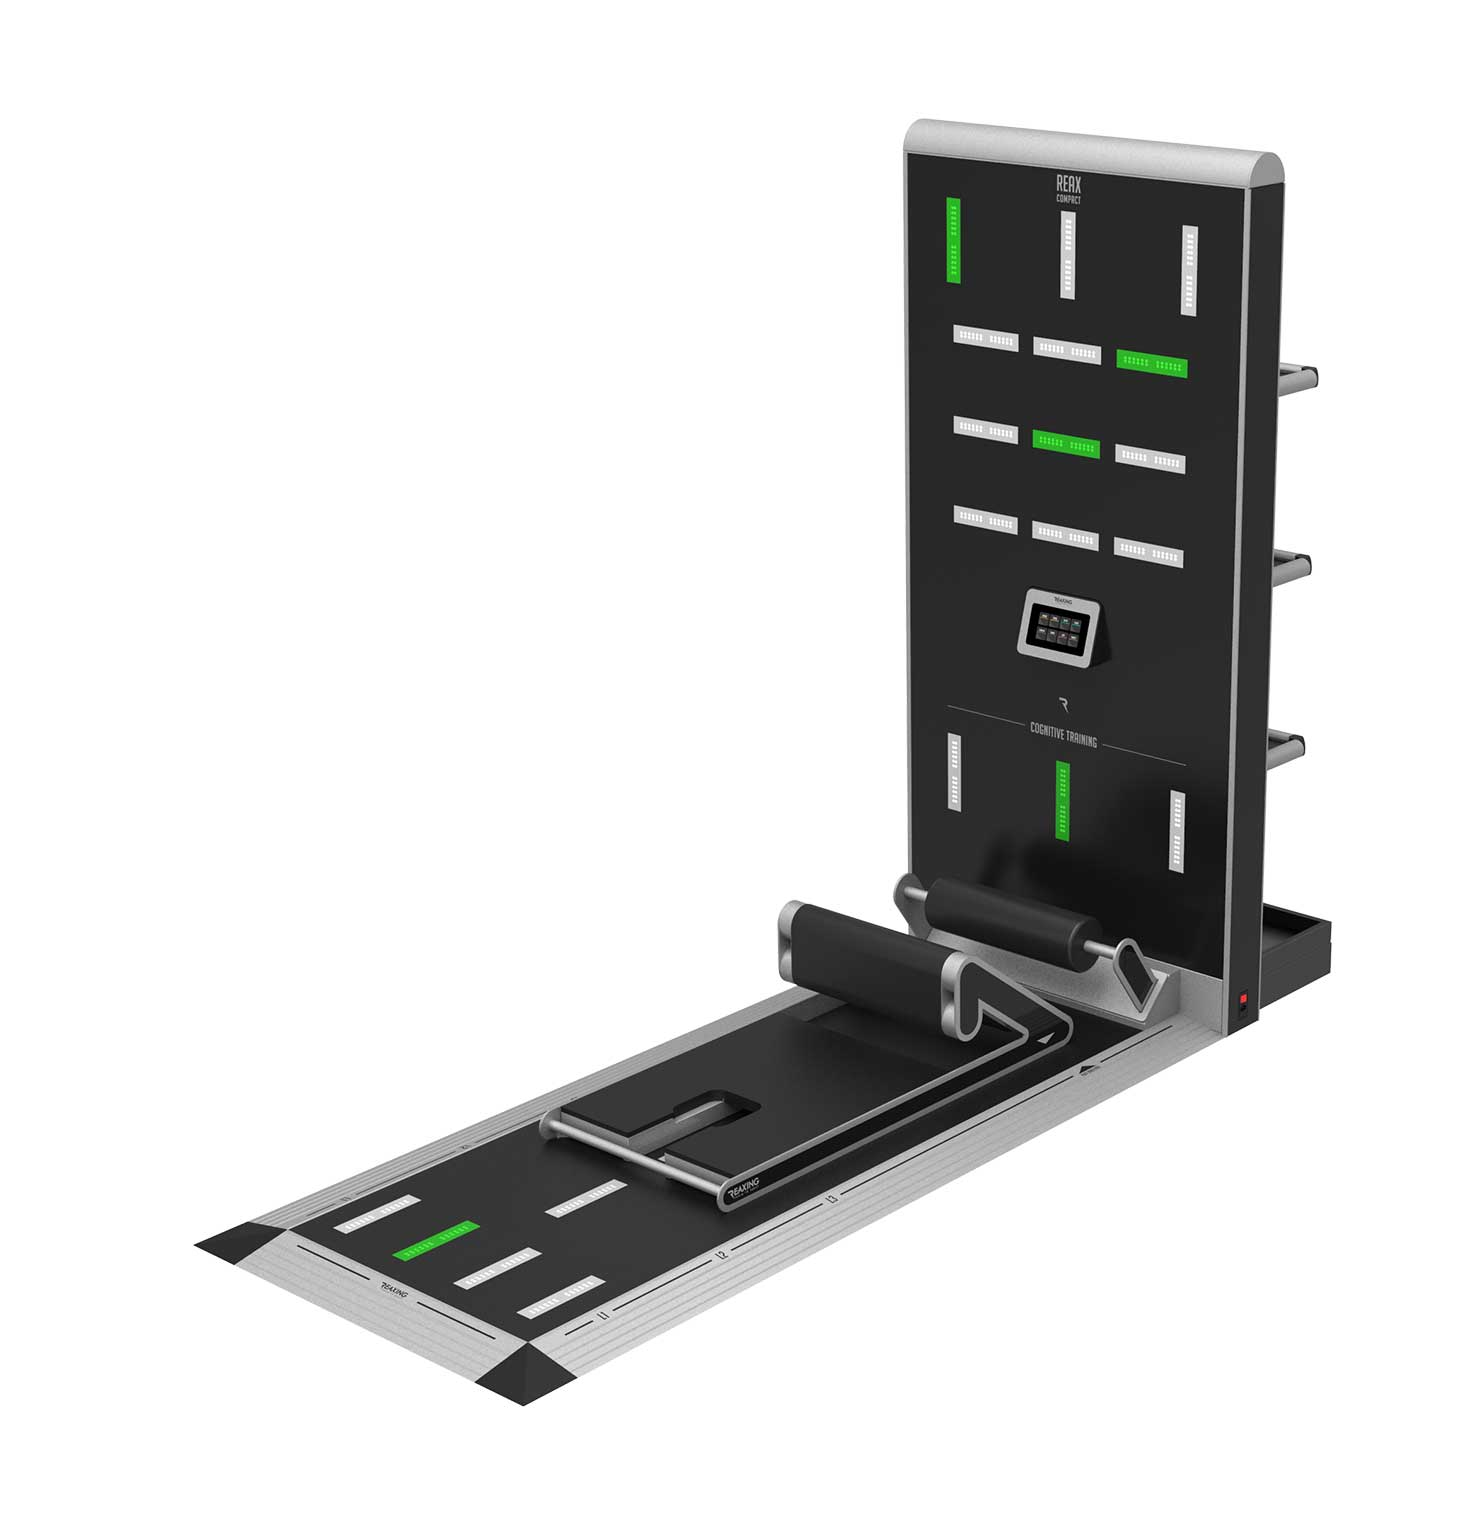 rx1648-reax-compact-wall-and-floor-self-standing